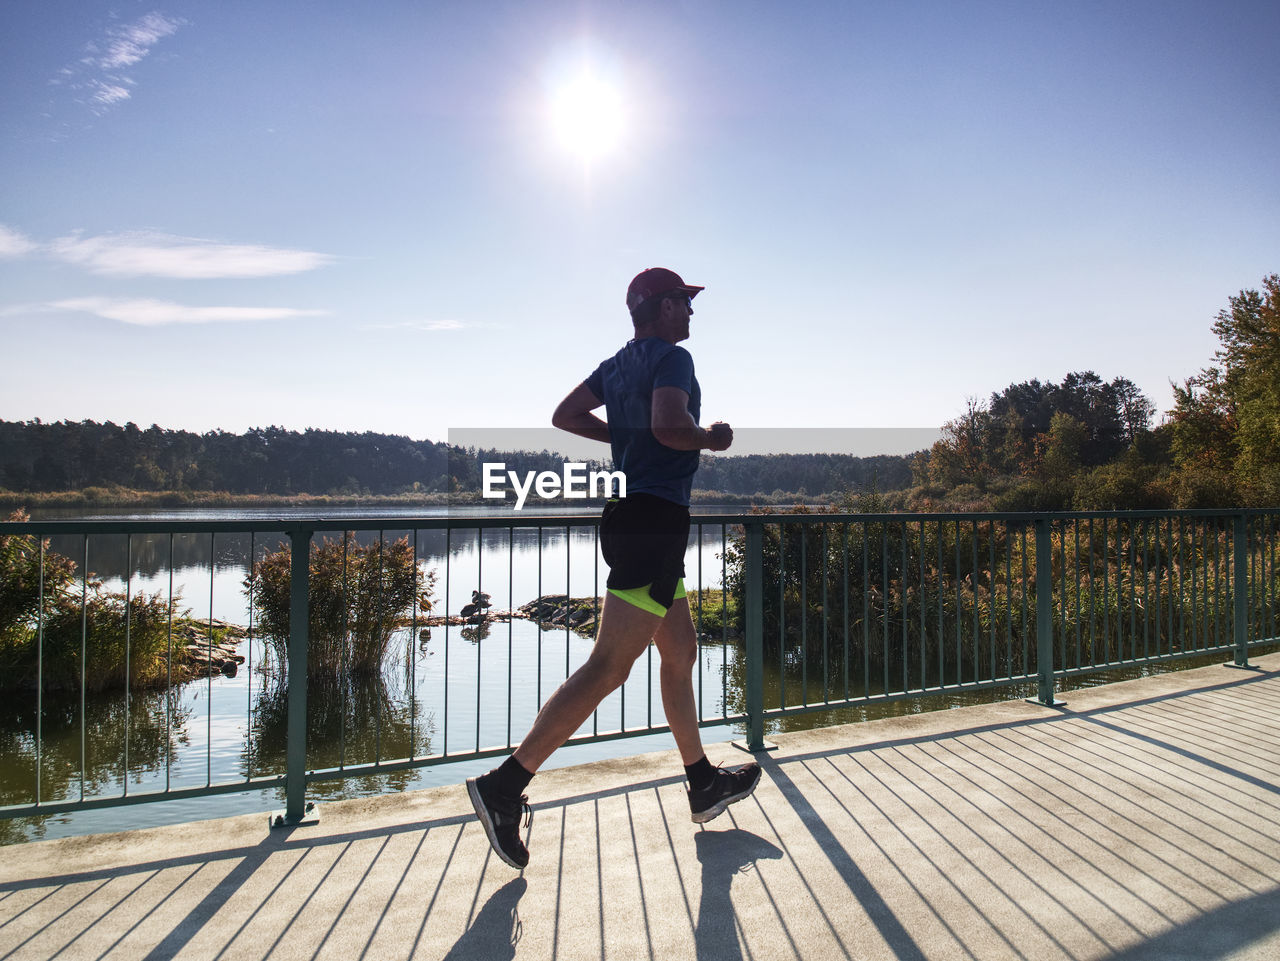 Man is training in the nature with sun behind him. young man on morning run outdoors.